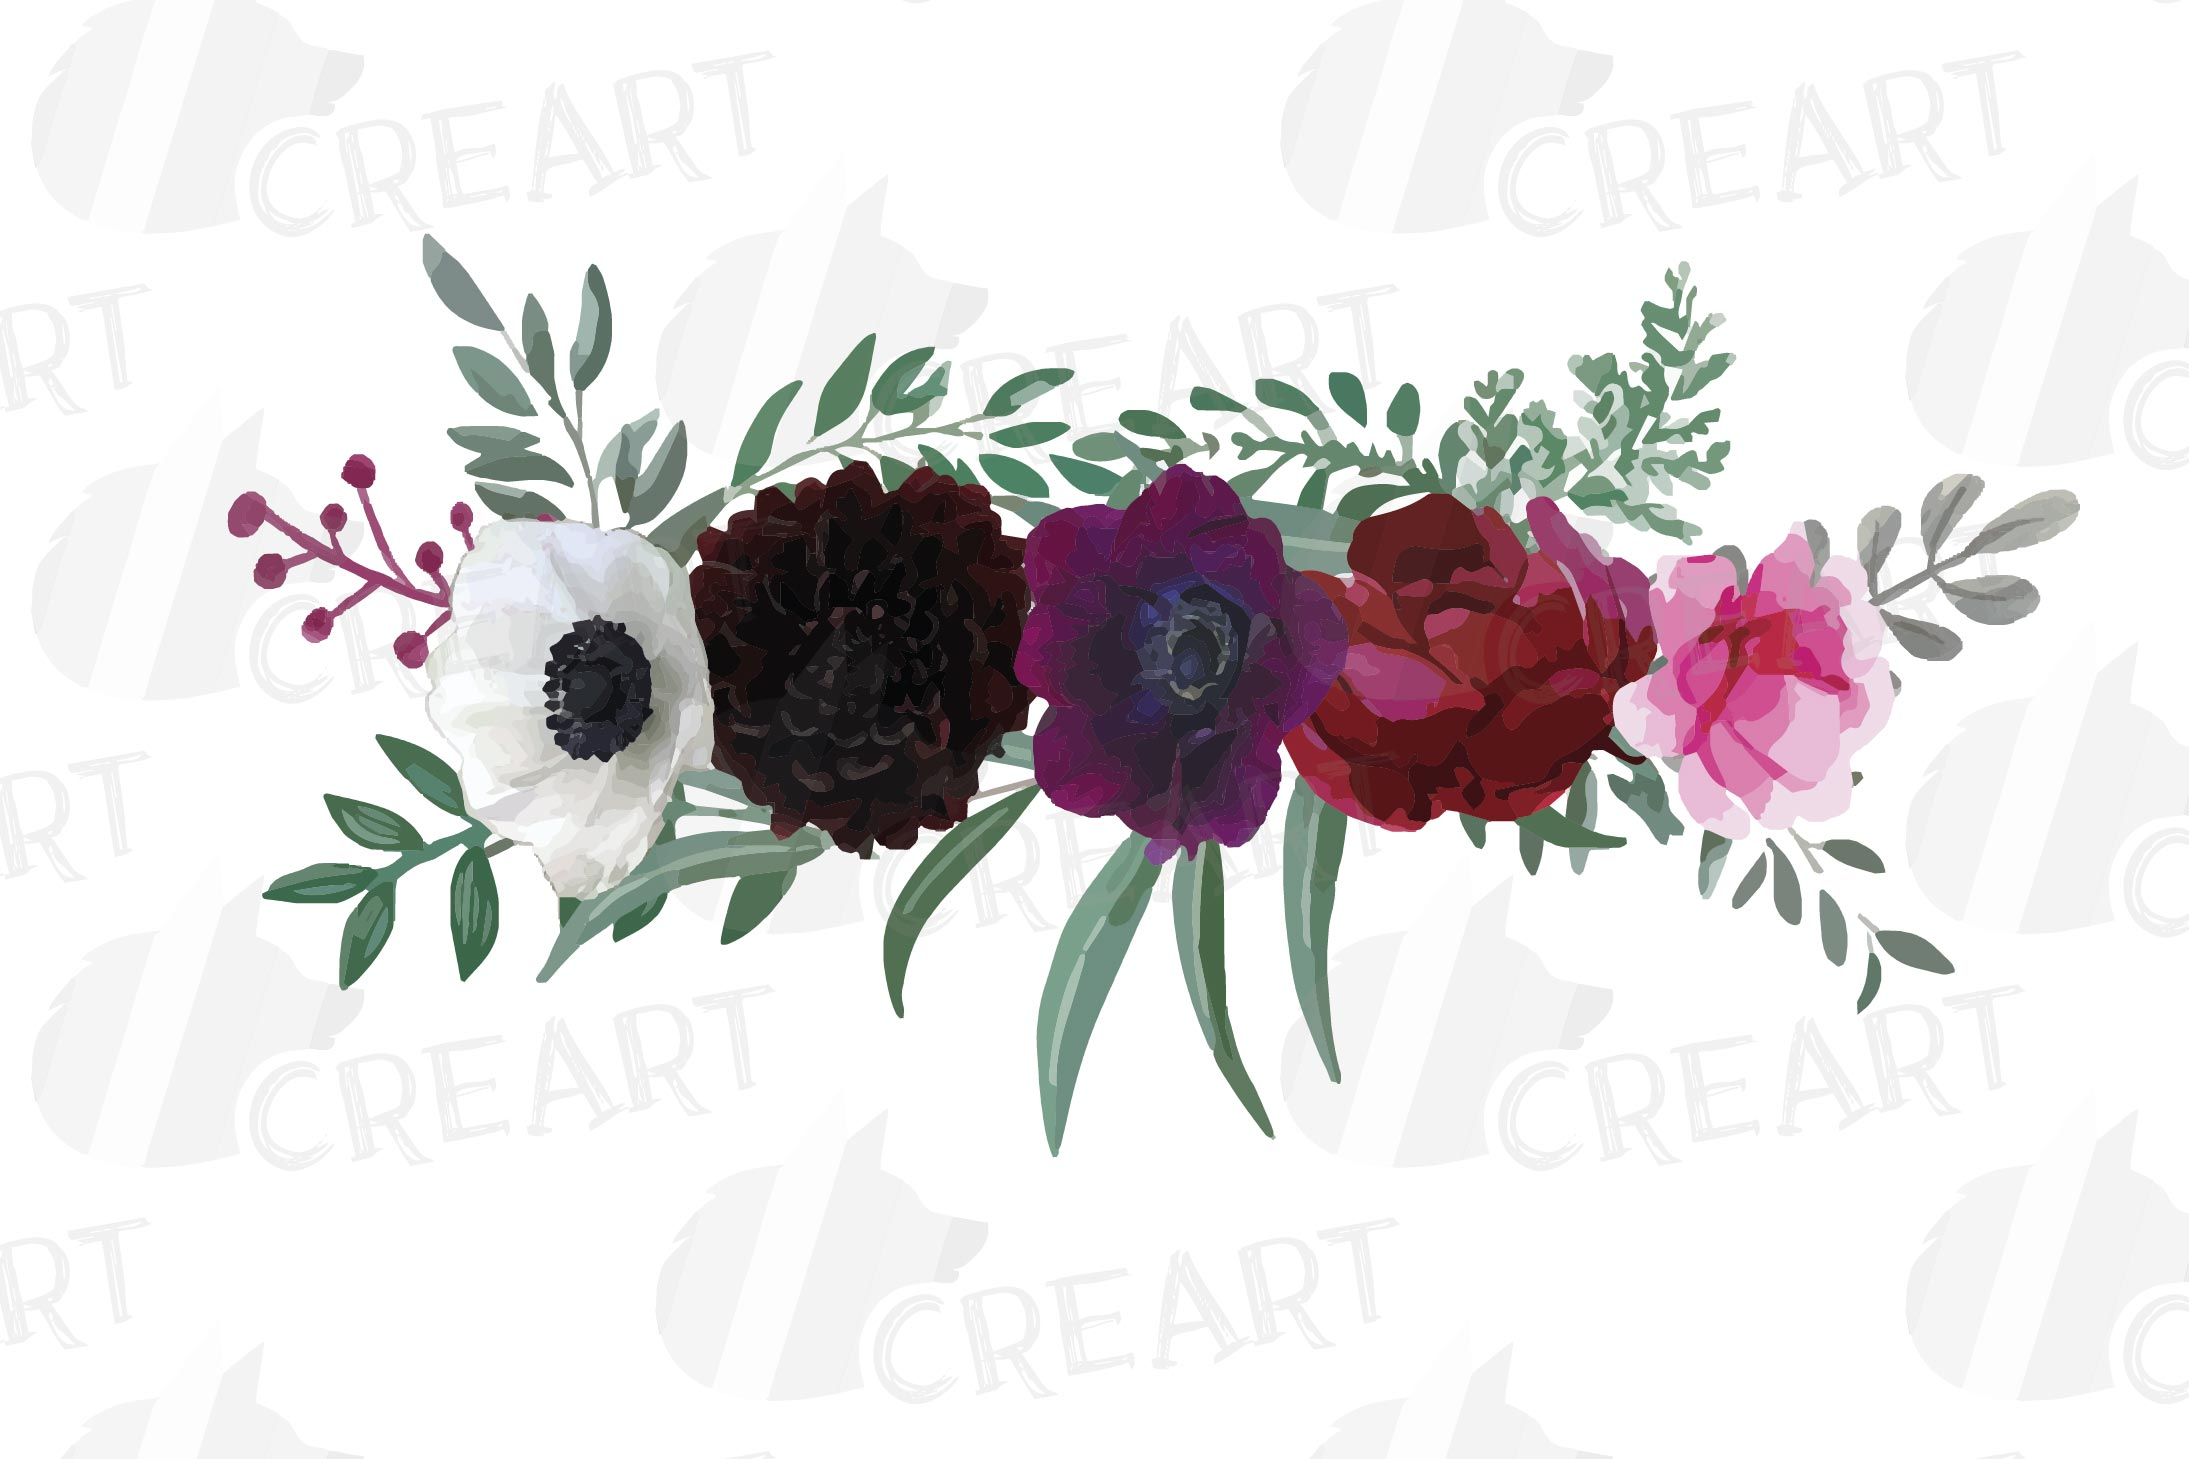 Watercolor elegant floral bouquets 2, rose, anemone decor example image 6